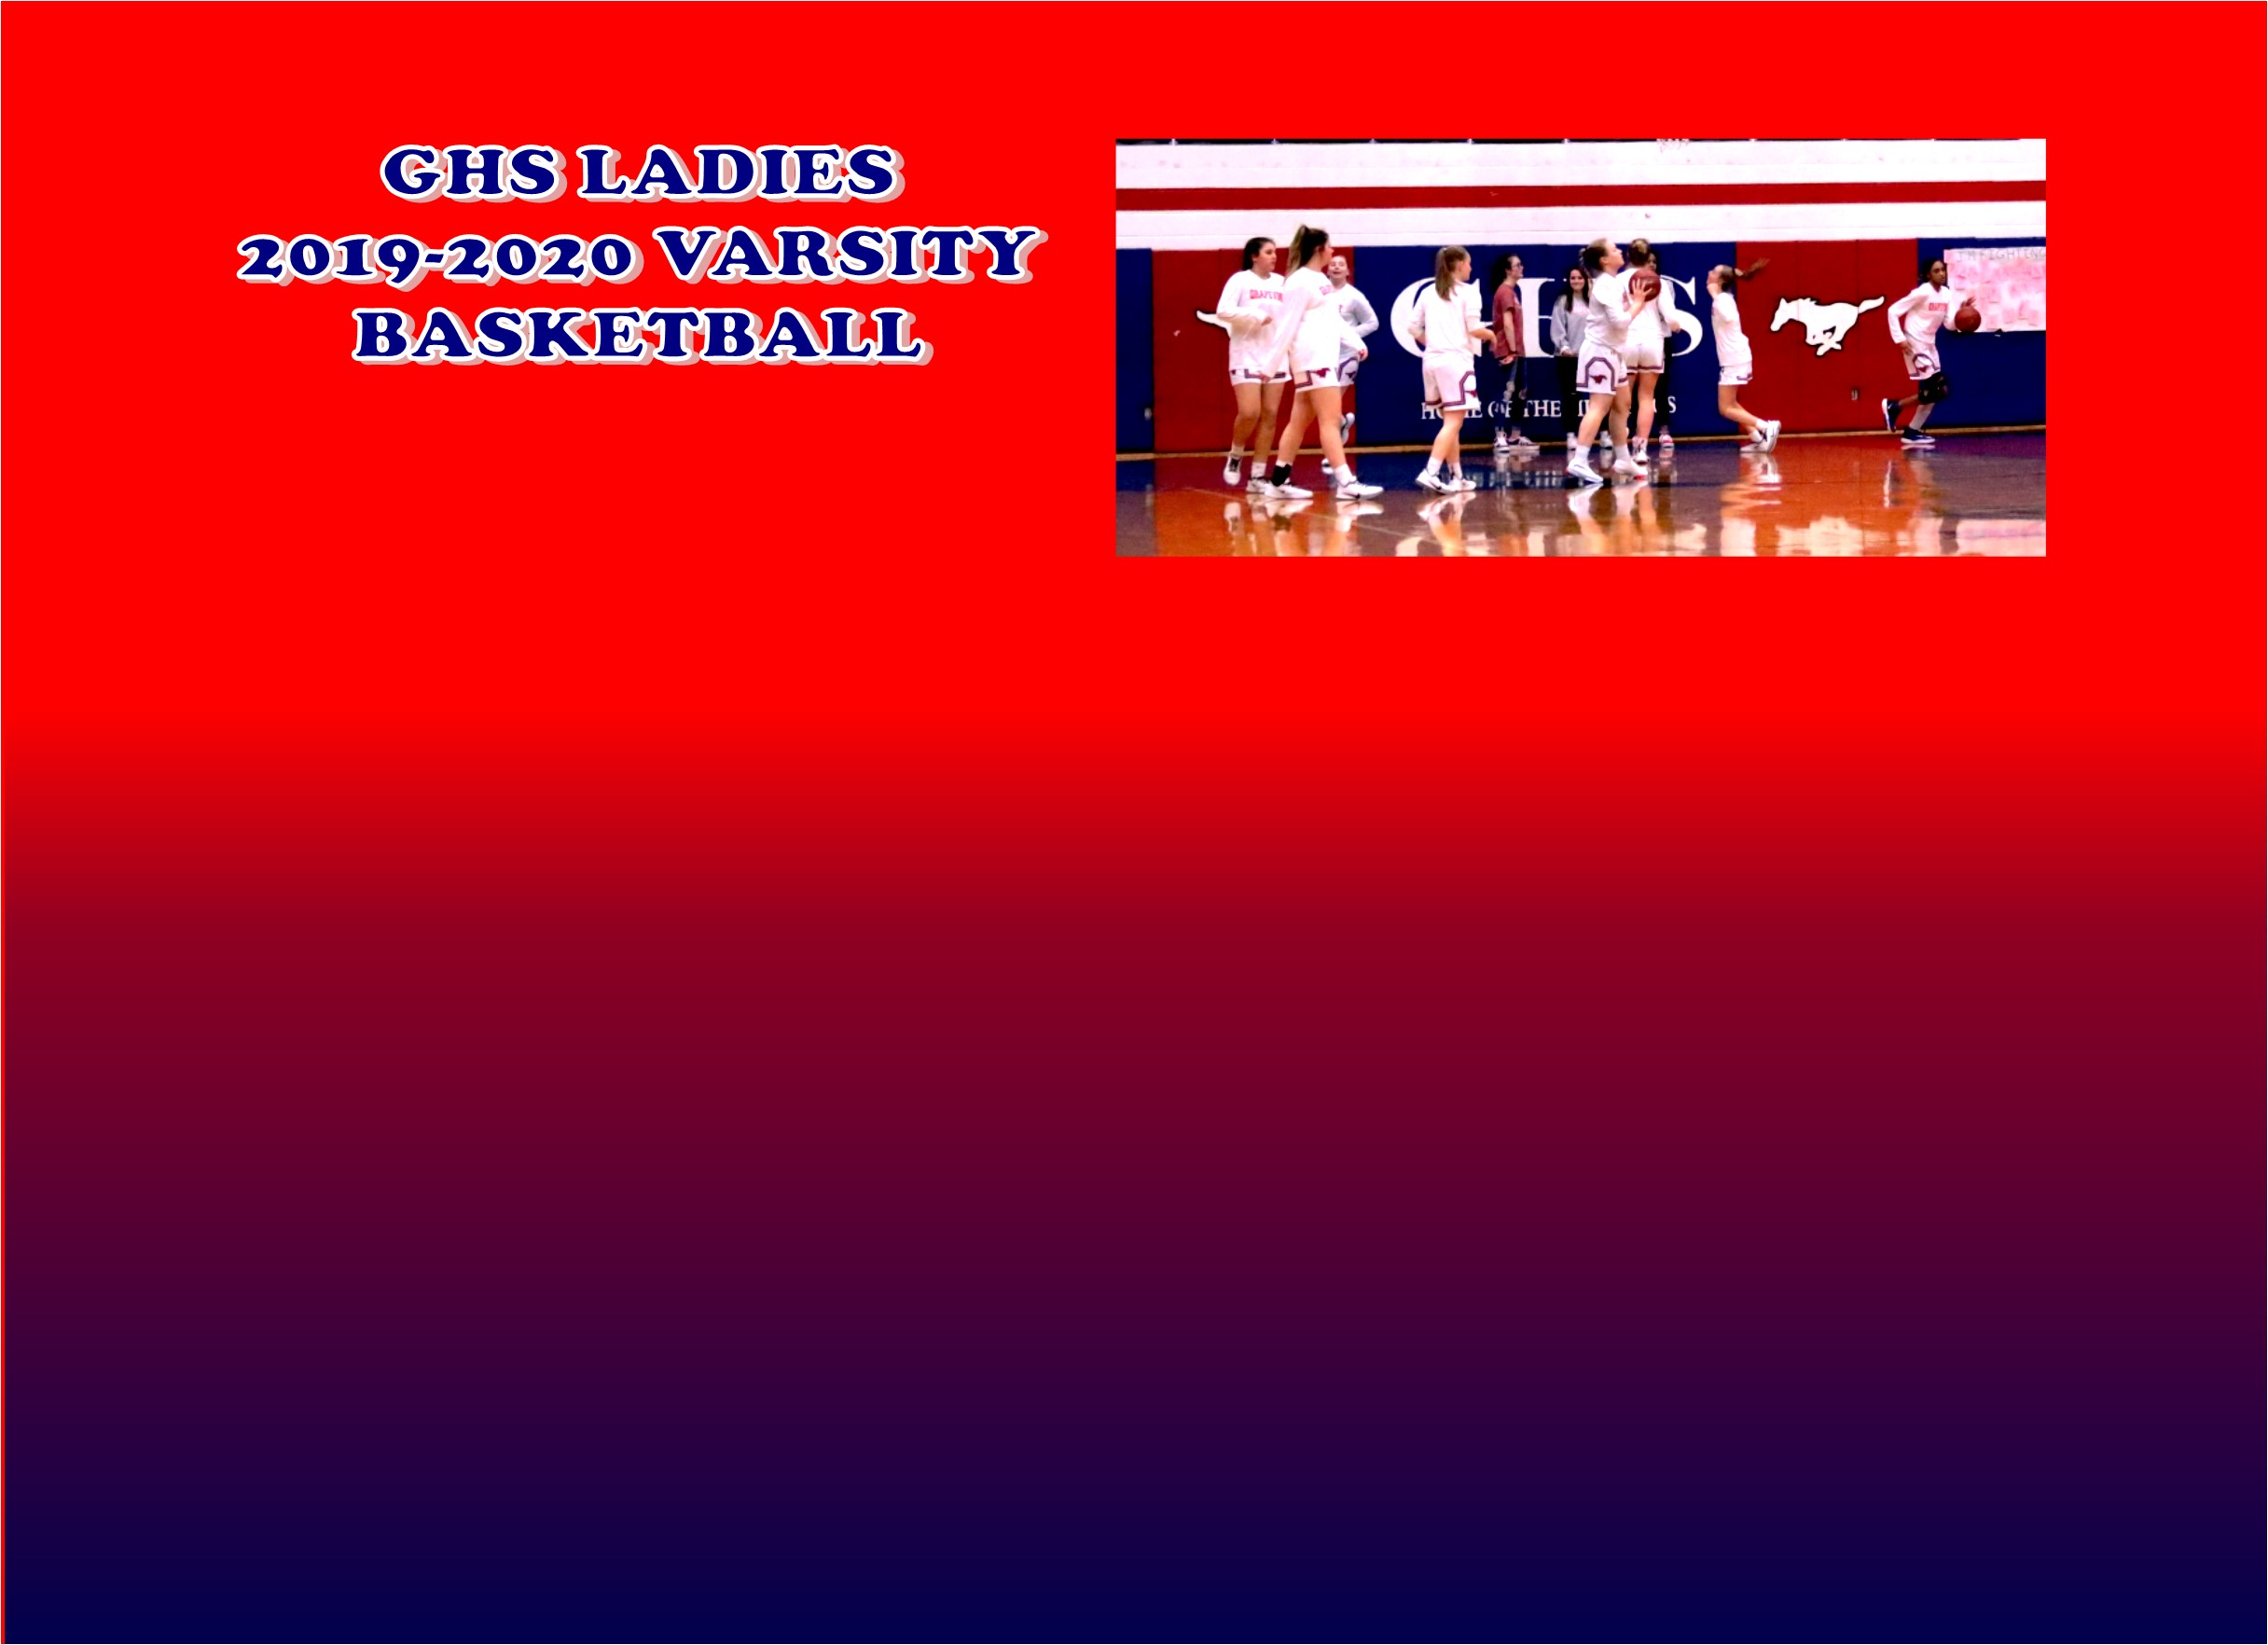 GCISD Basketball: Grapevine Lady Mustangs Defeat Colleyville Lady Panthers